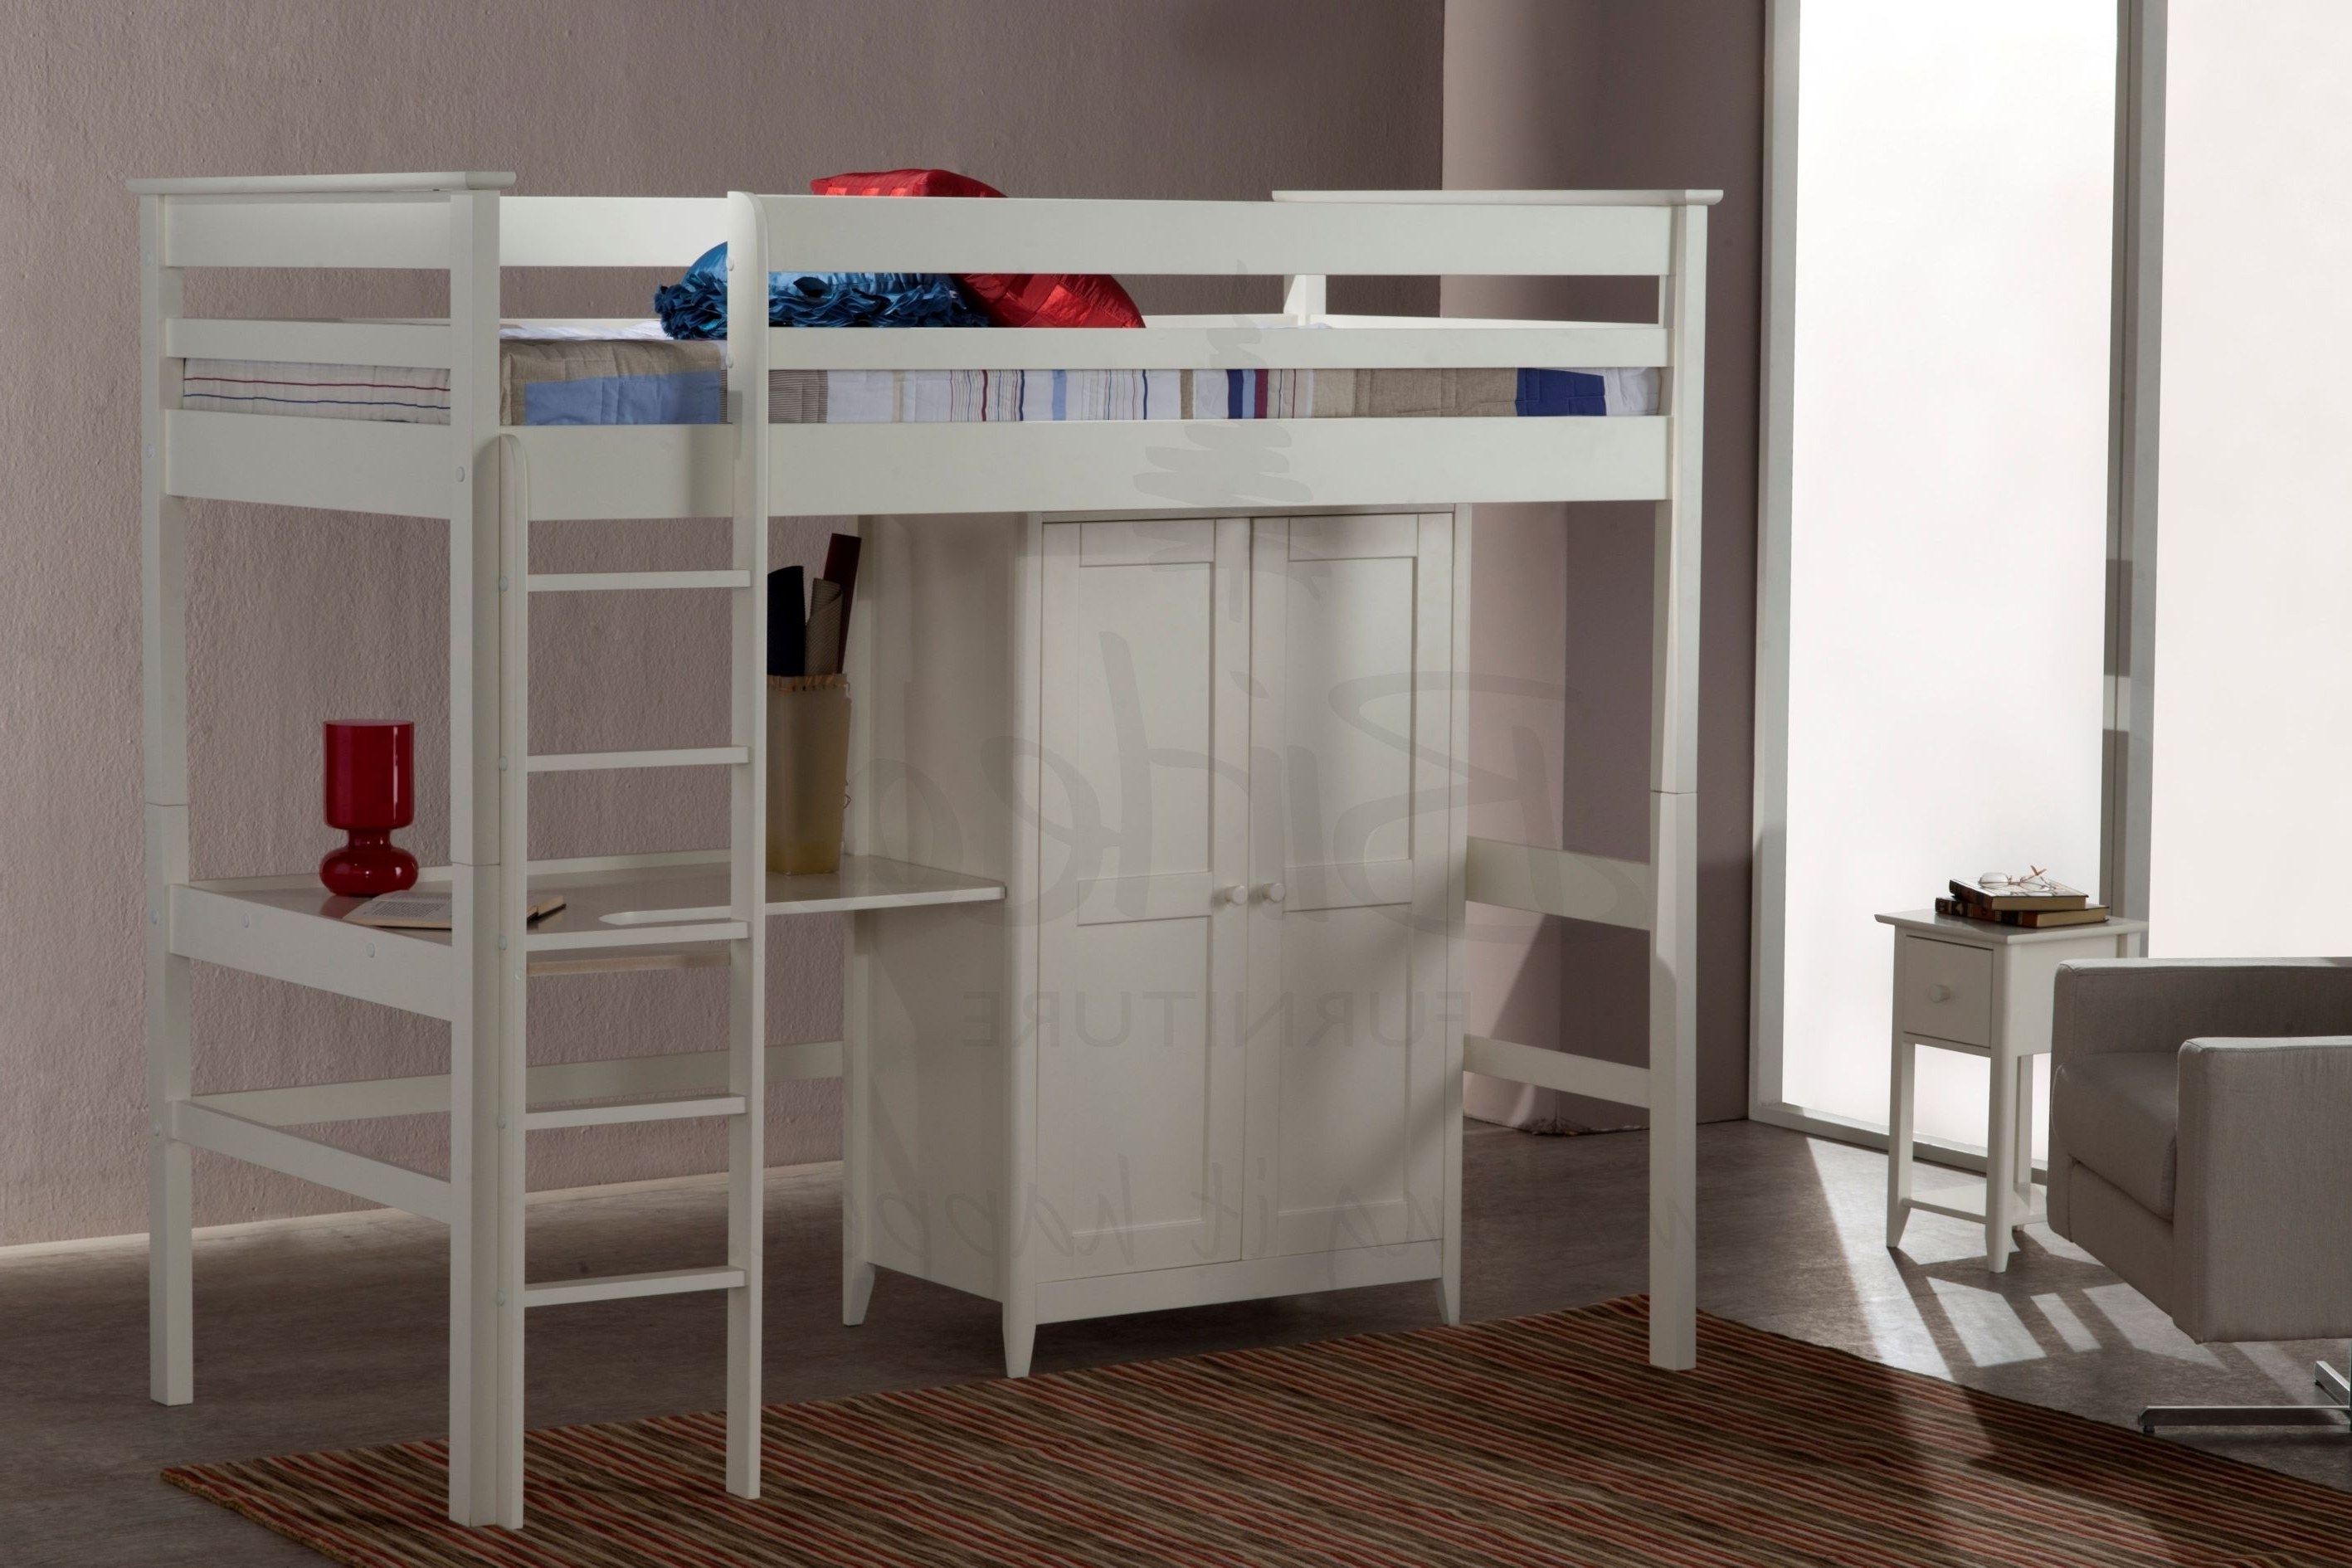 Most Popular High Sleeper Bed With Wardrobes Inside Solemn White Wooden High Beds With Wardrobe Feat Brown Rug As Well (View 4 of 15)